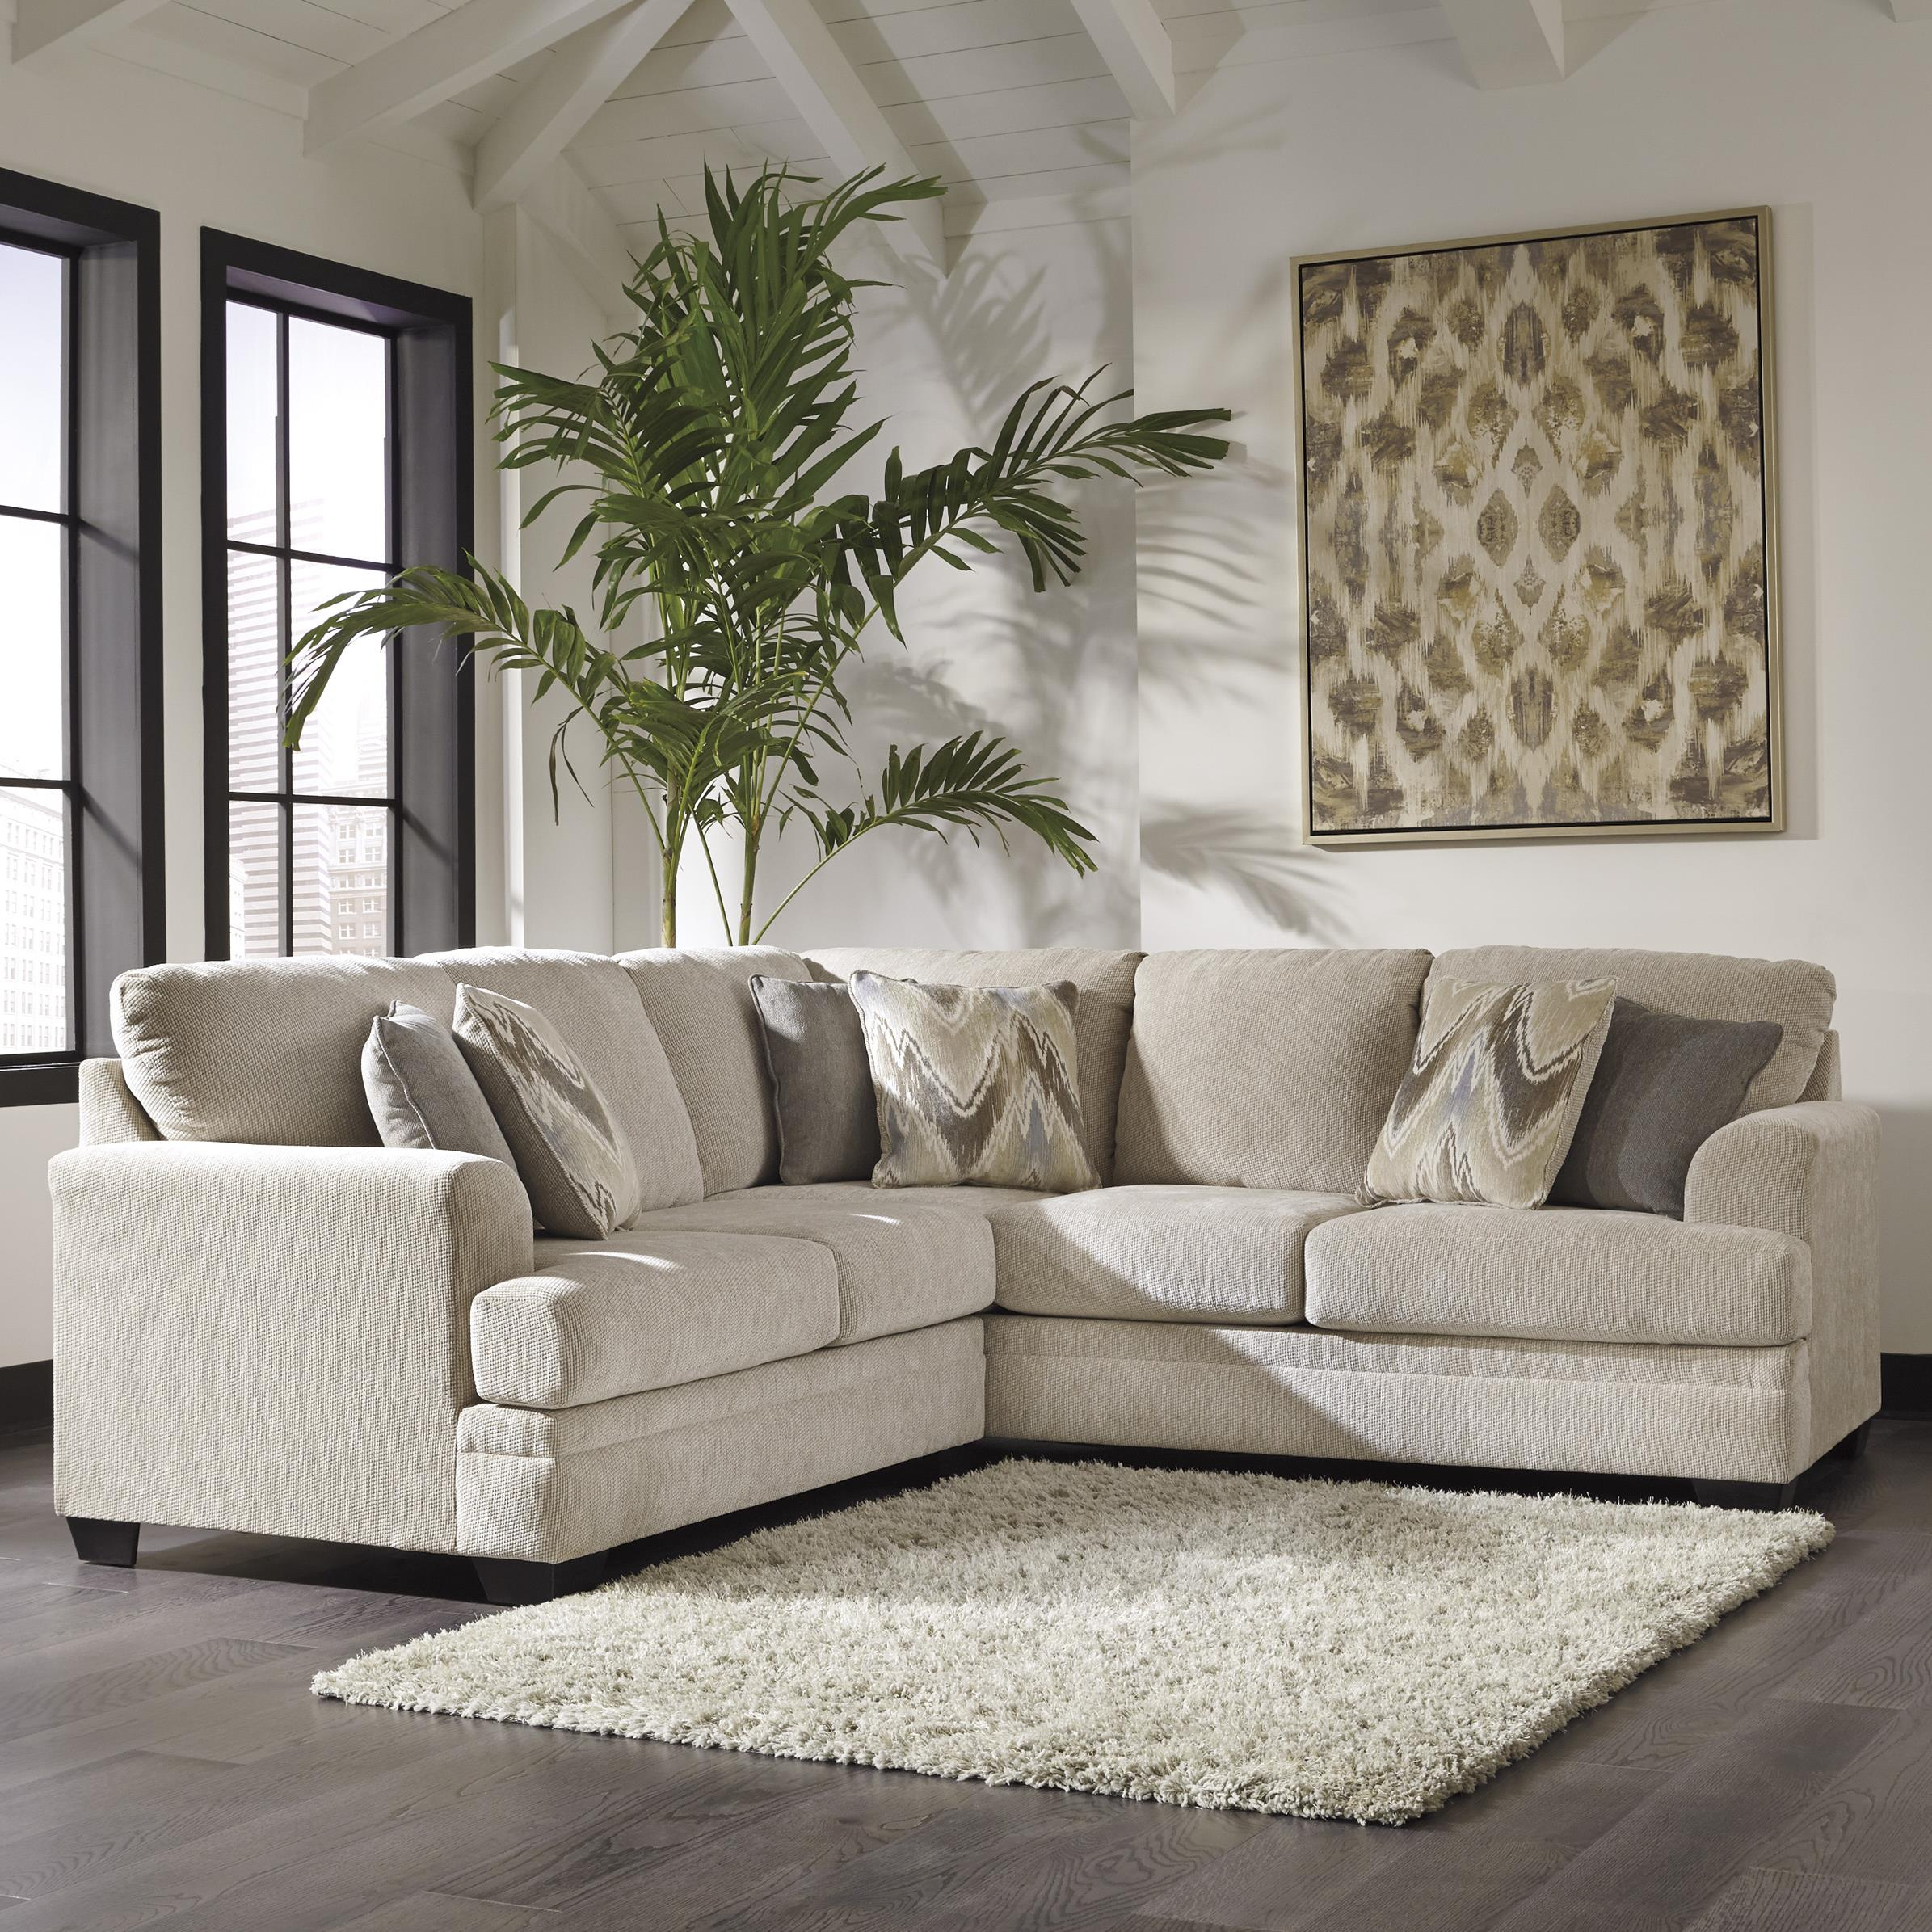 Benchcraft Ameer 2-Piece Sectional - Item Number: 8180655+67